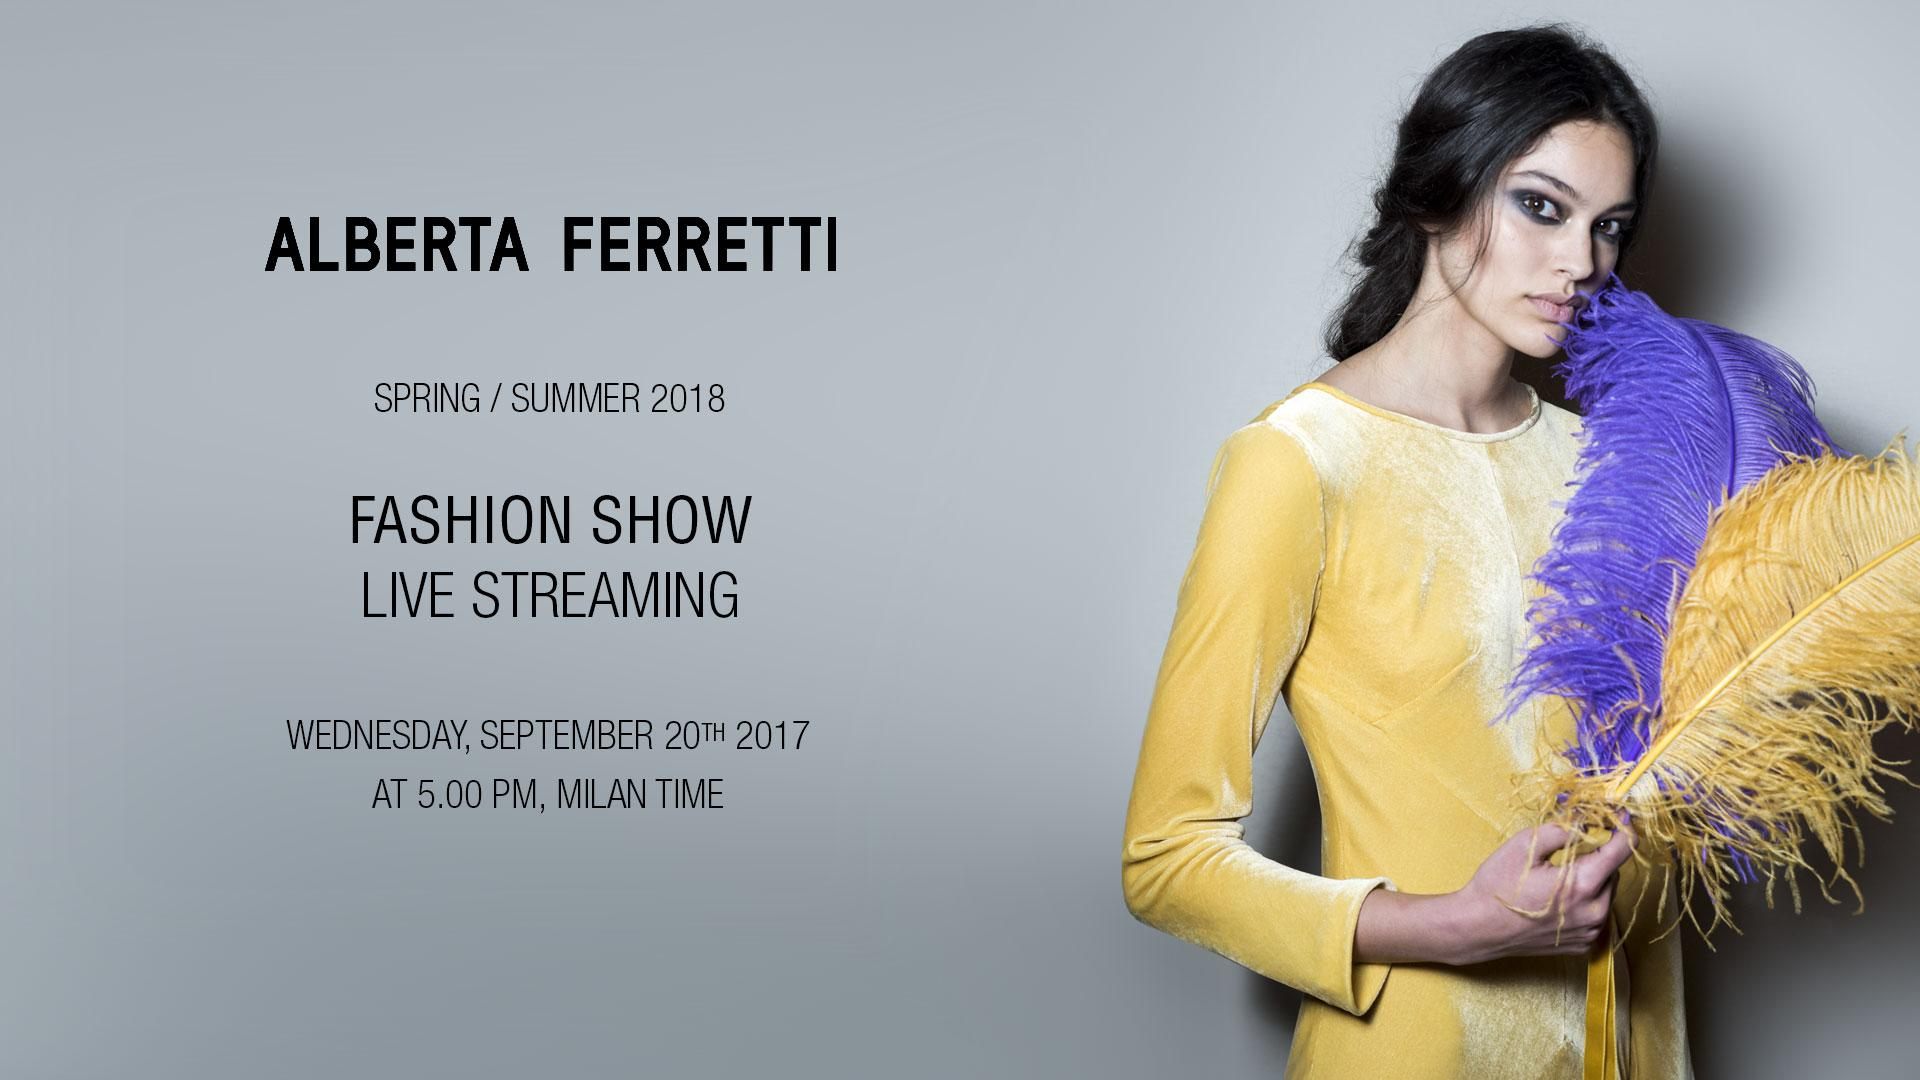 Alberta Ferretti Spring Summer 2018 Fashion Show Live Streaming